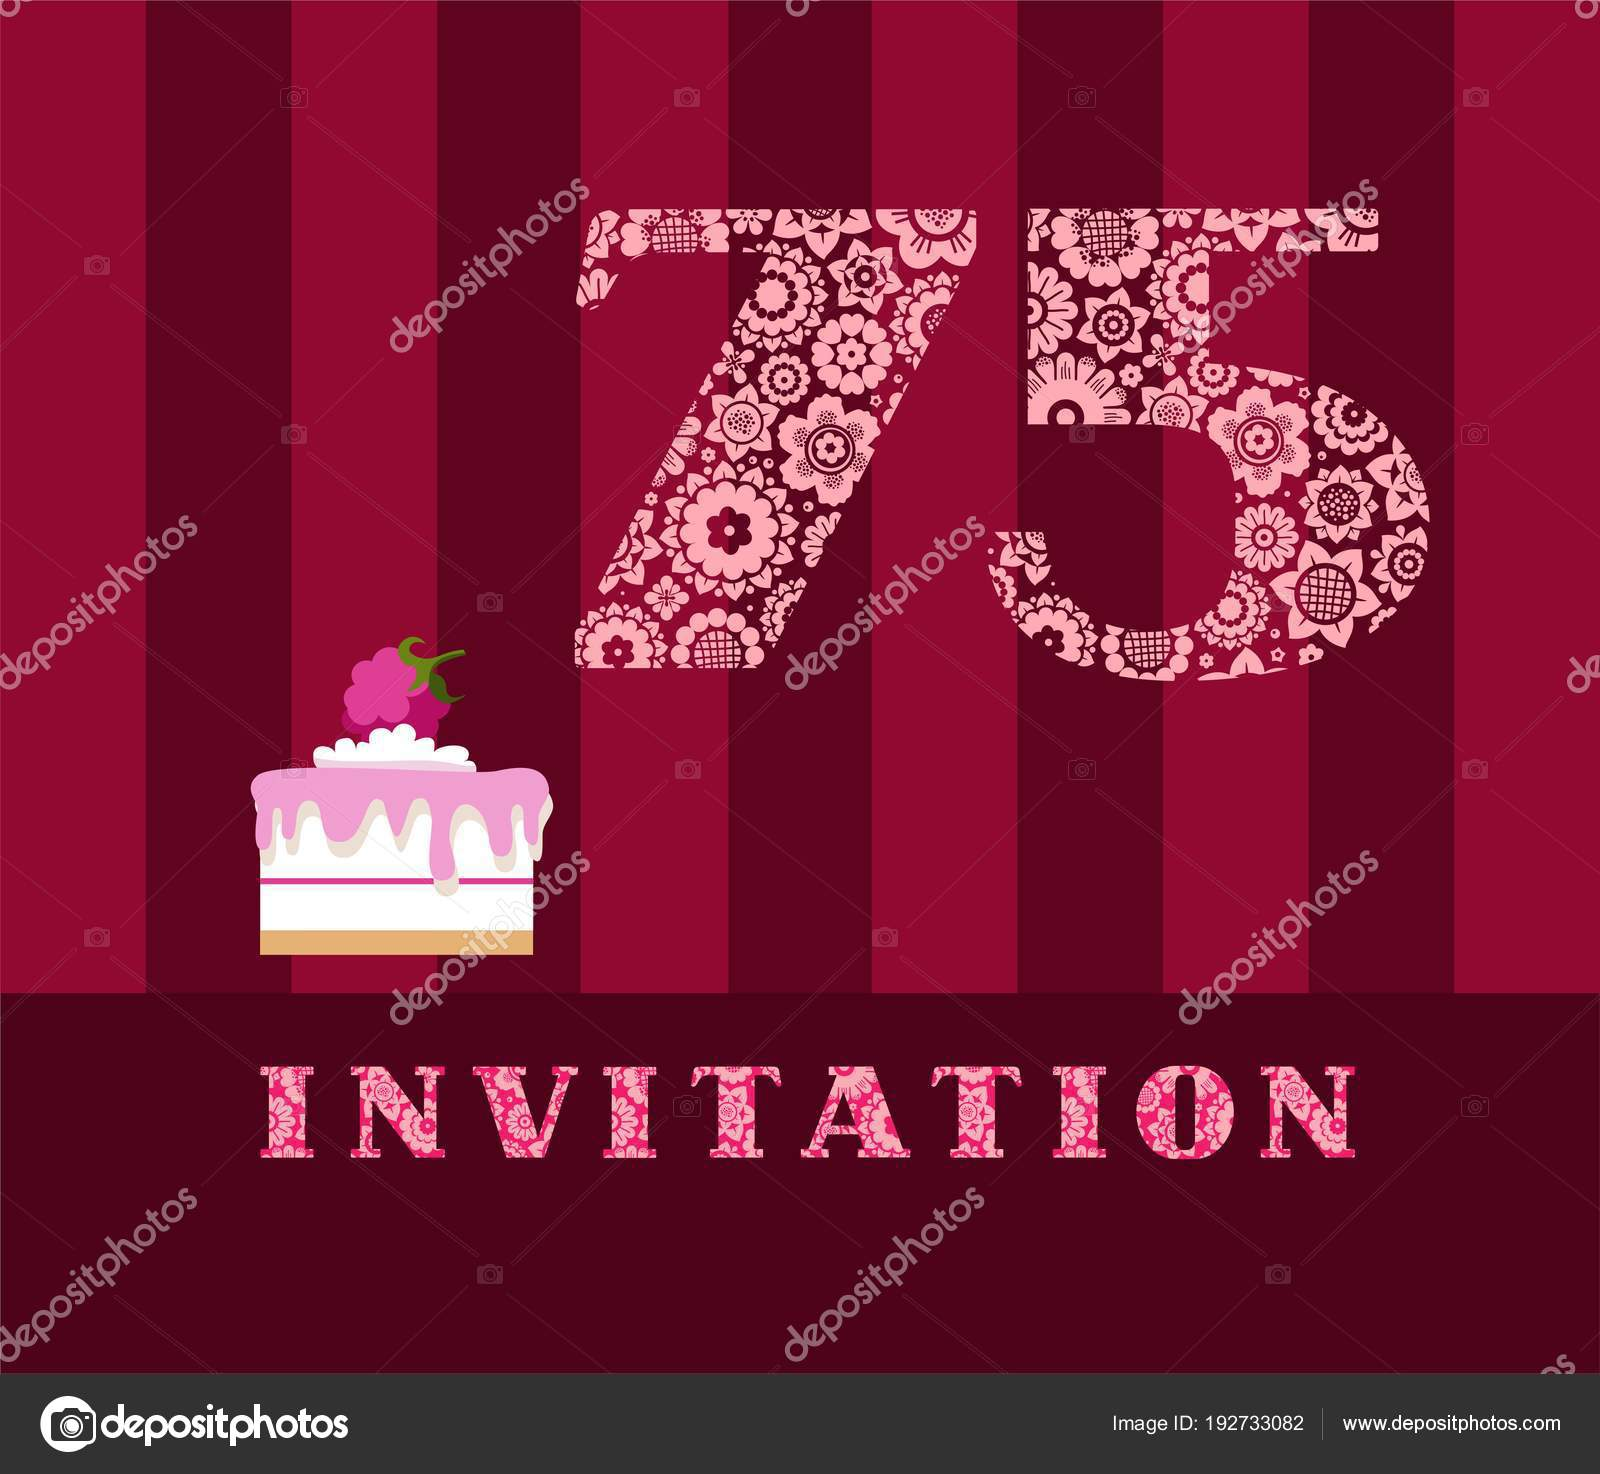 Invitation years old raspberry pie vector english invitation invitation years old raspberry pie vector english invitation birthday party stock vector stopboris